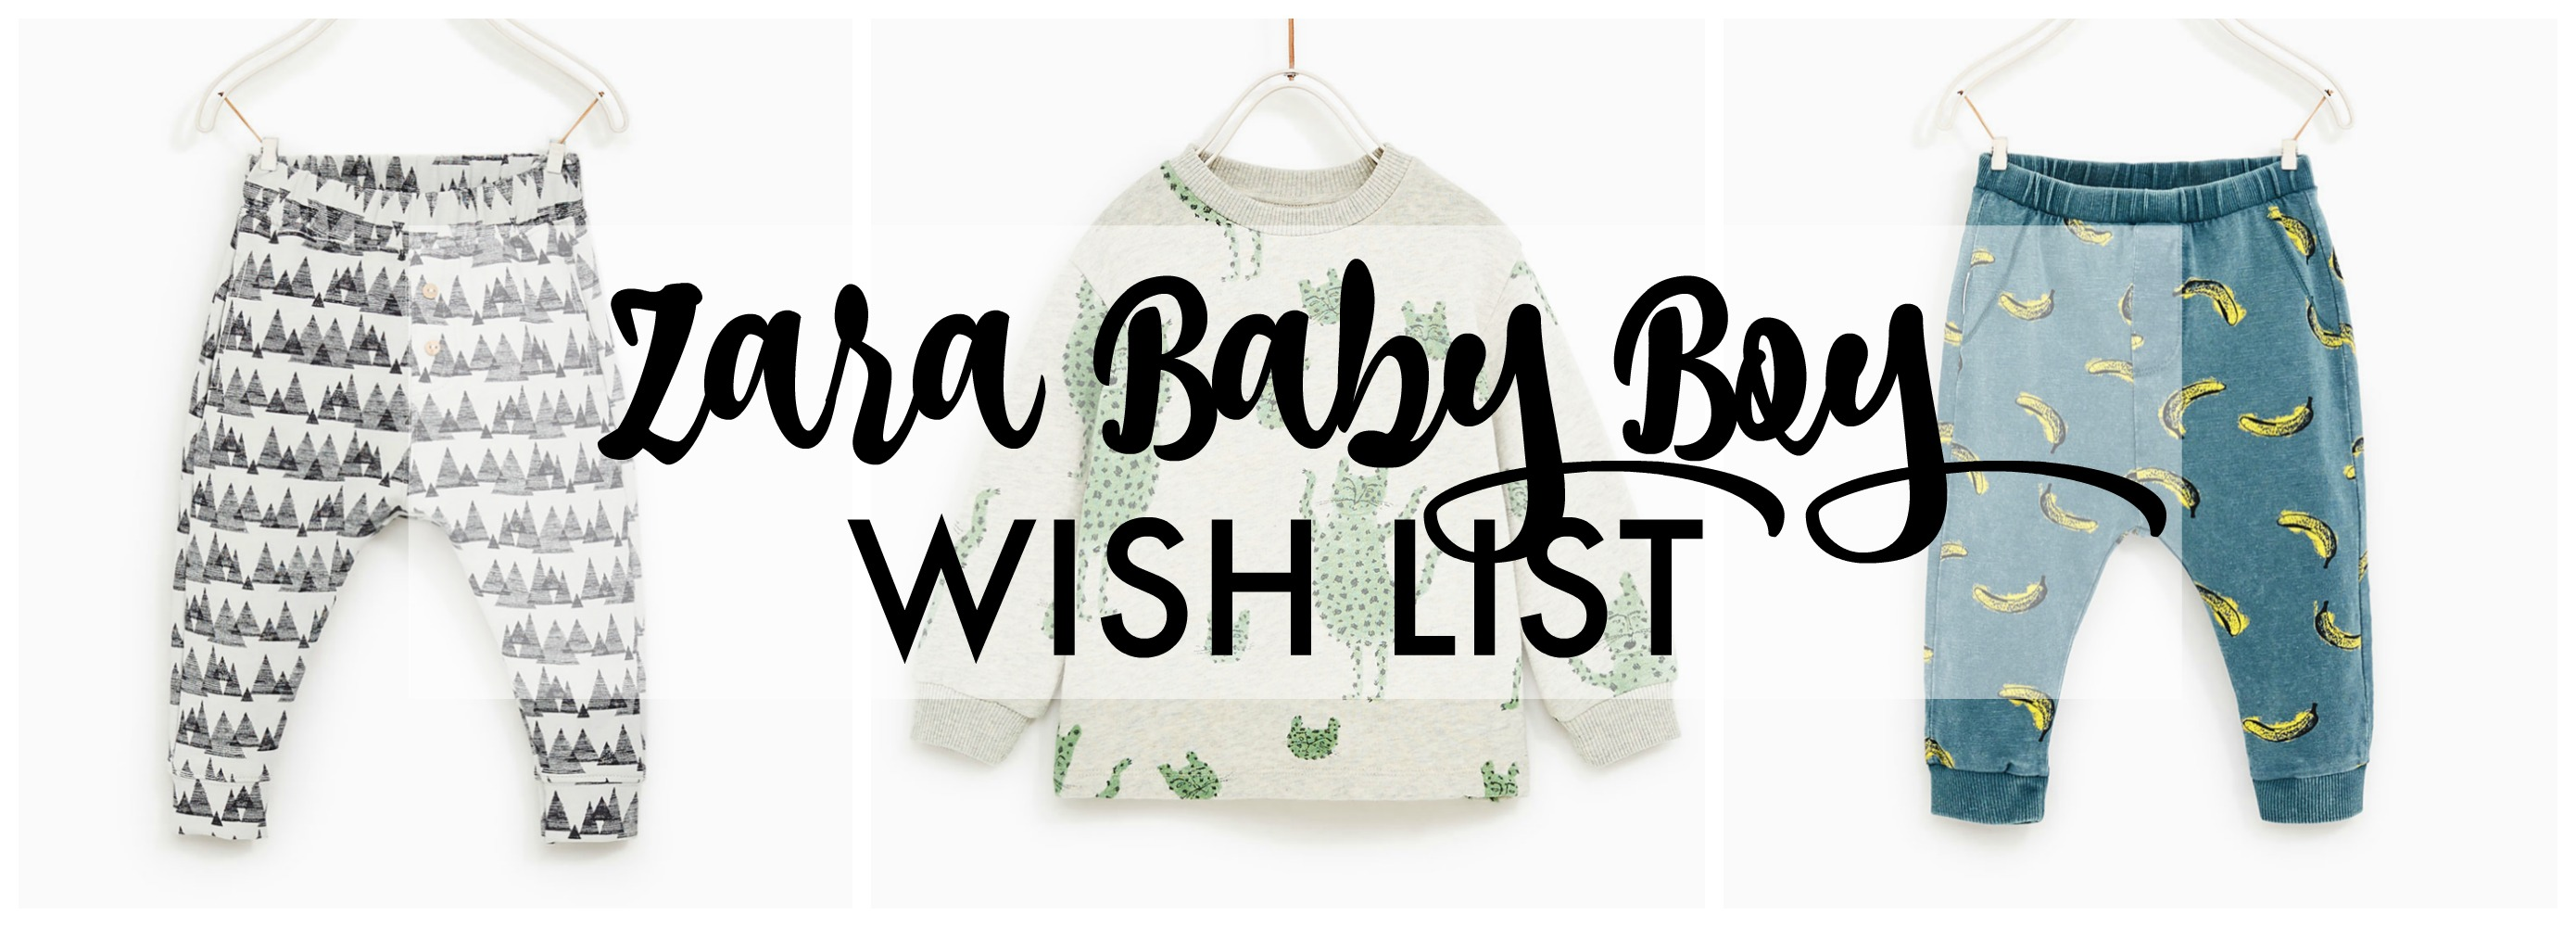 zara baby boy wish list title